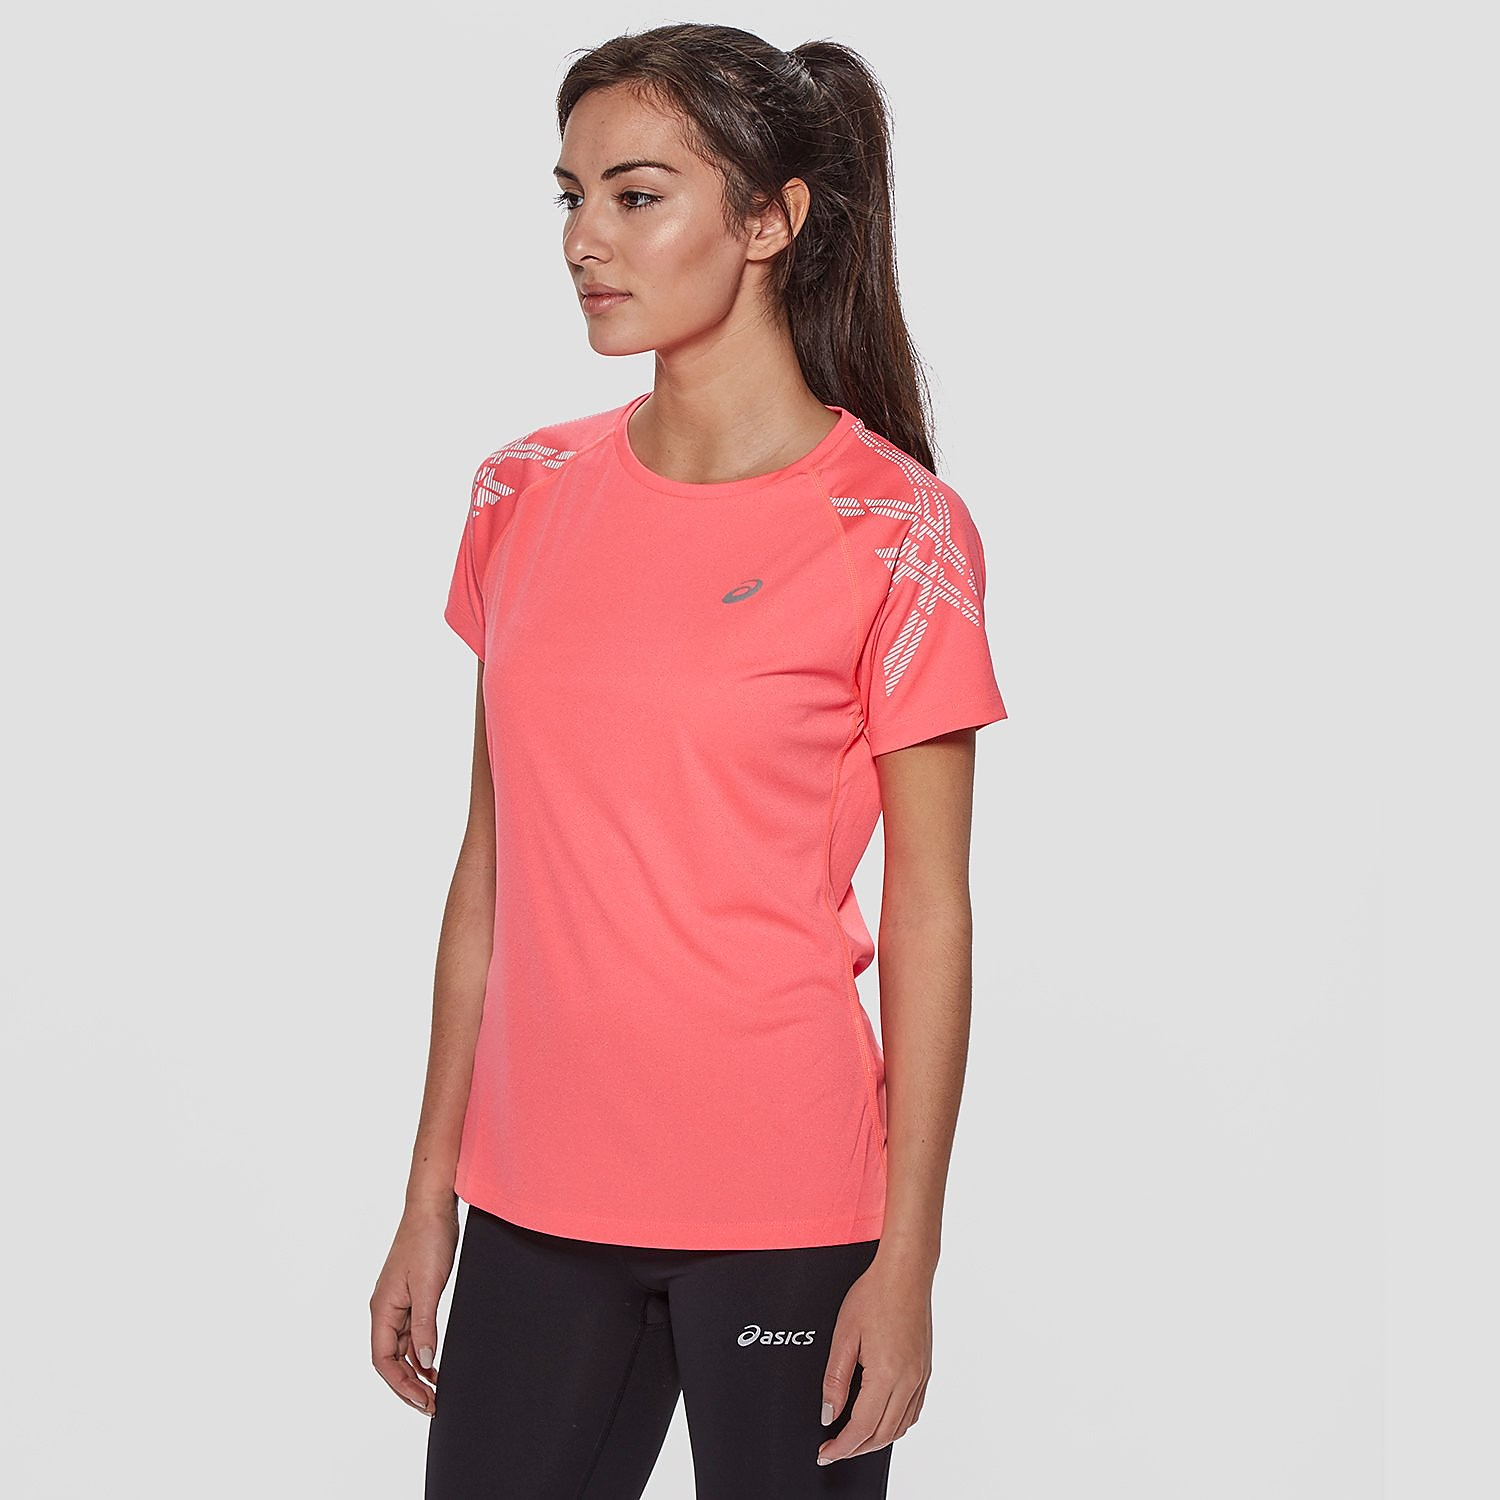 ASICS Stripe Short Sleeve Women's T-Shirt